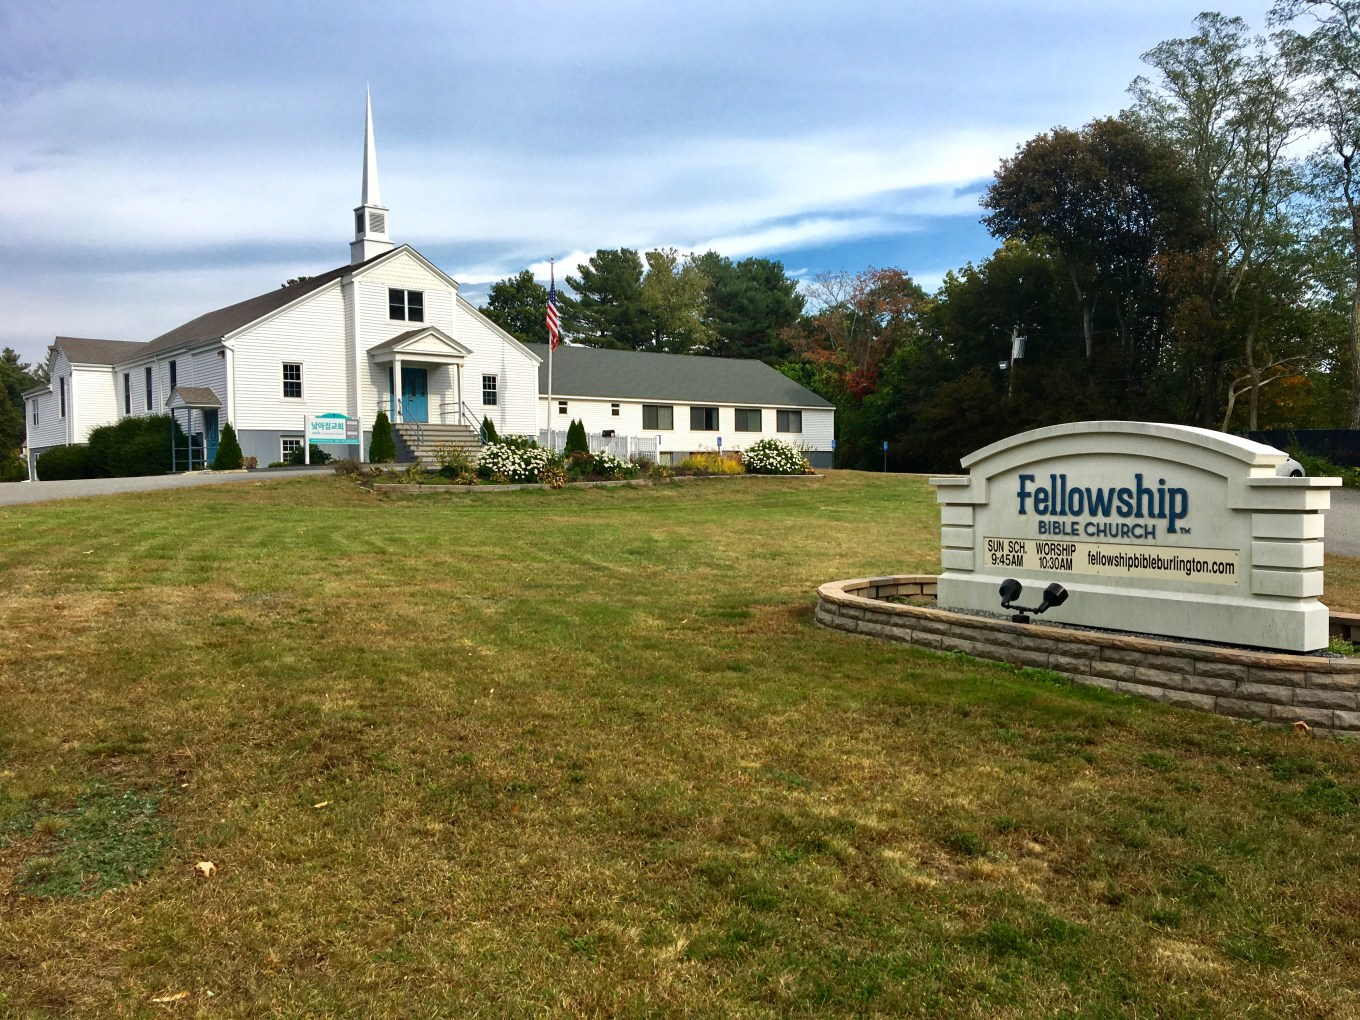 Fellowship Bible Church, Burlington MA